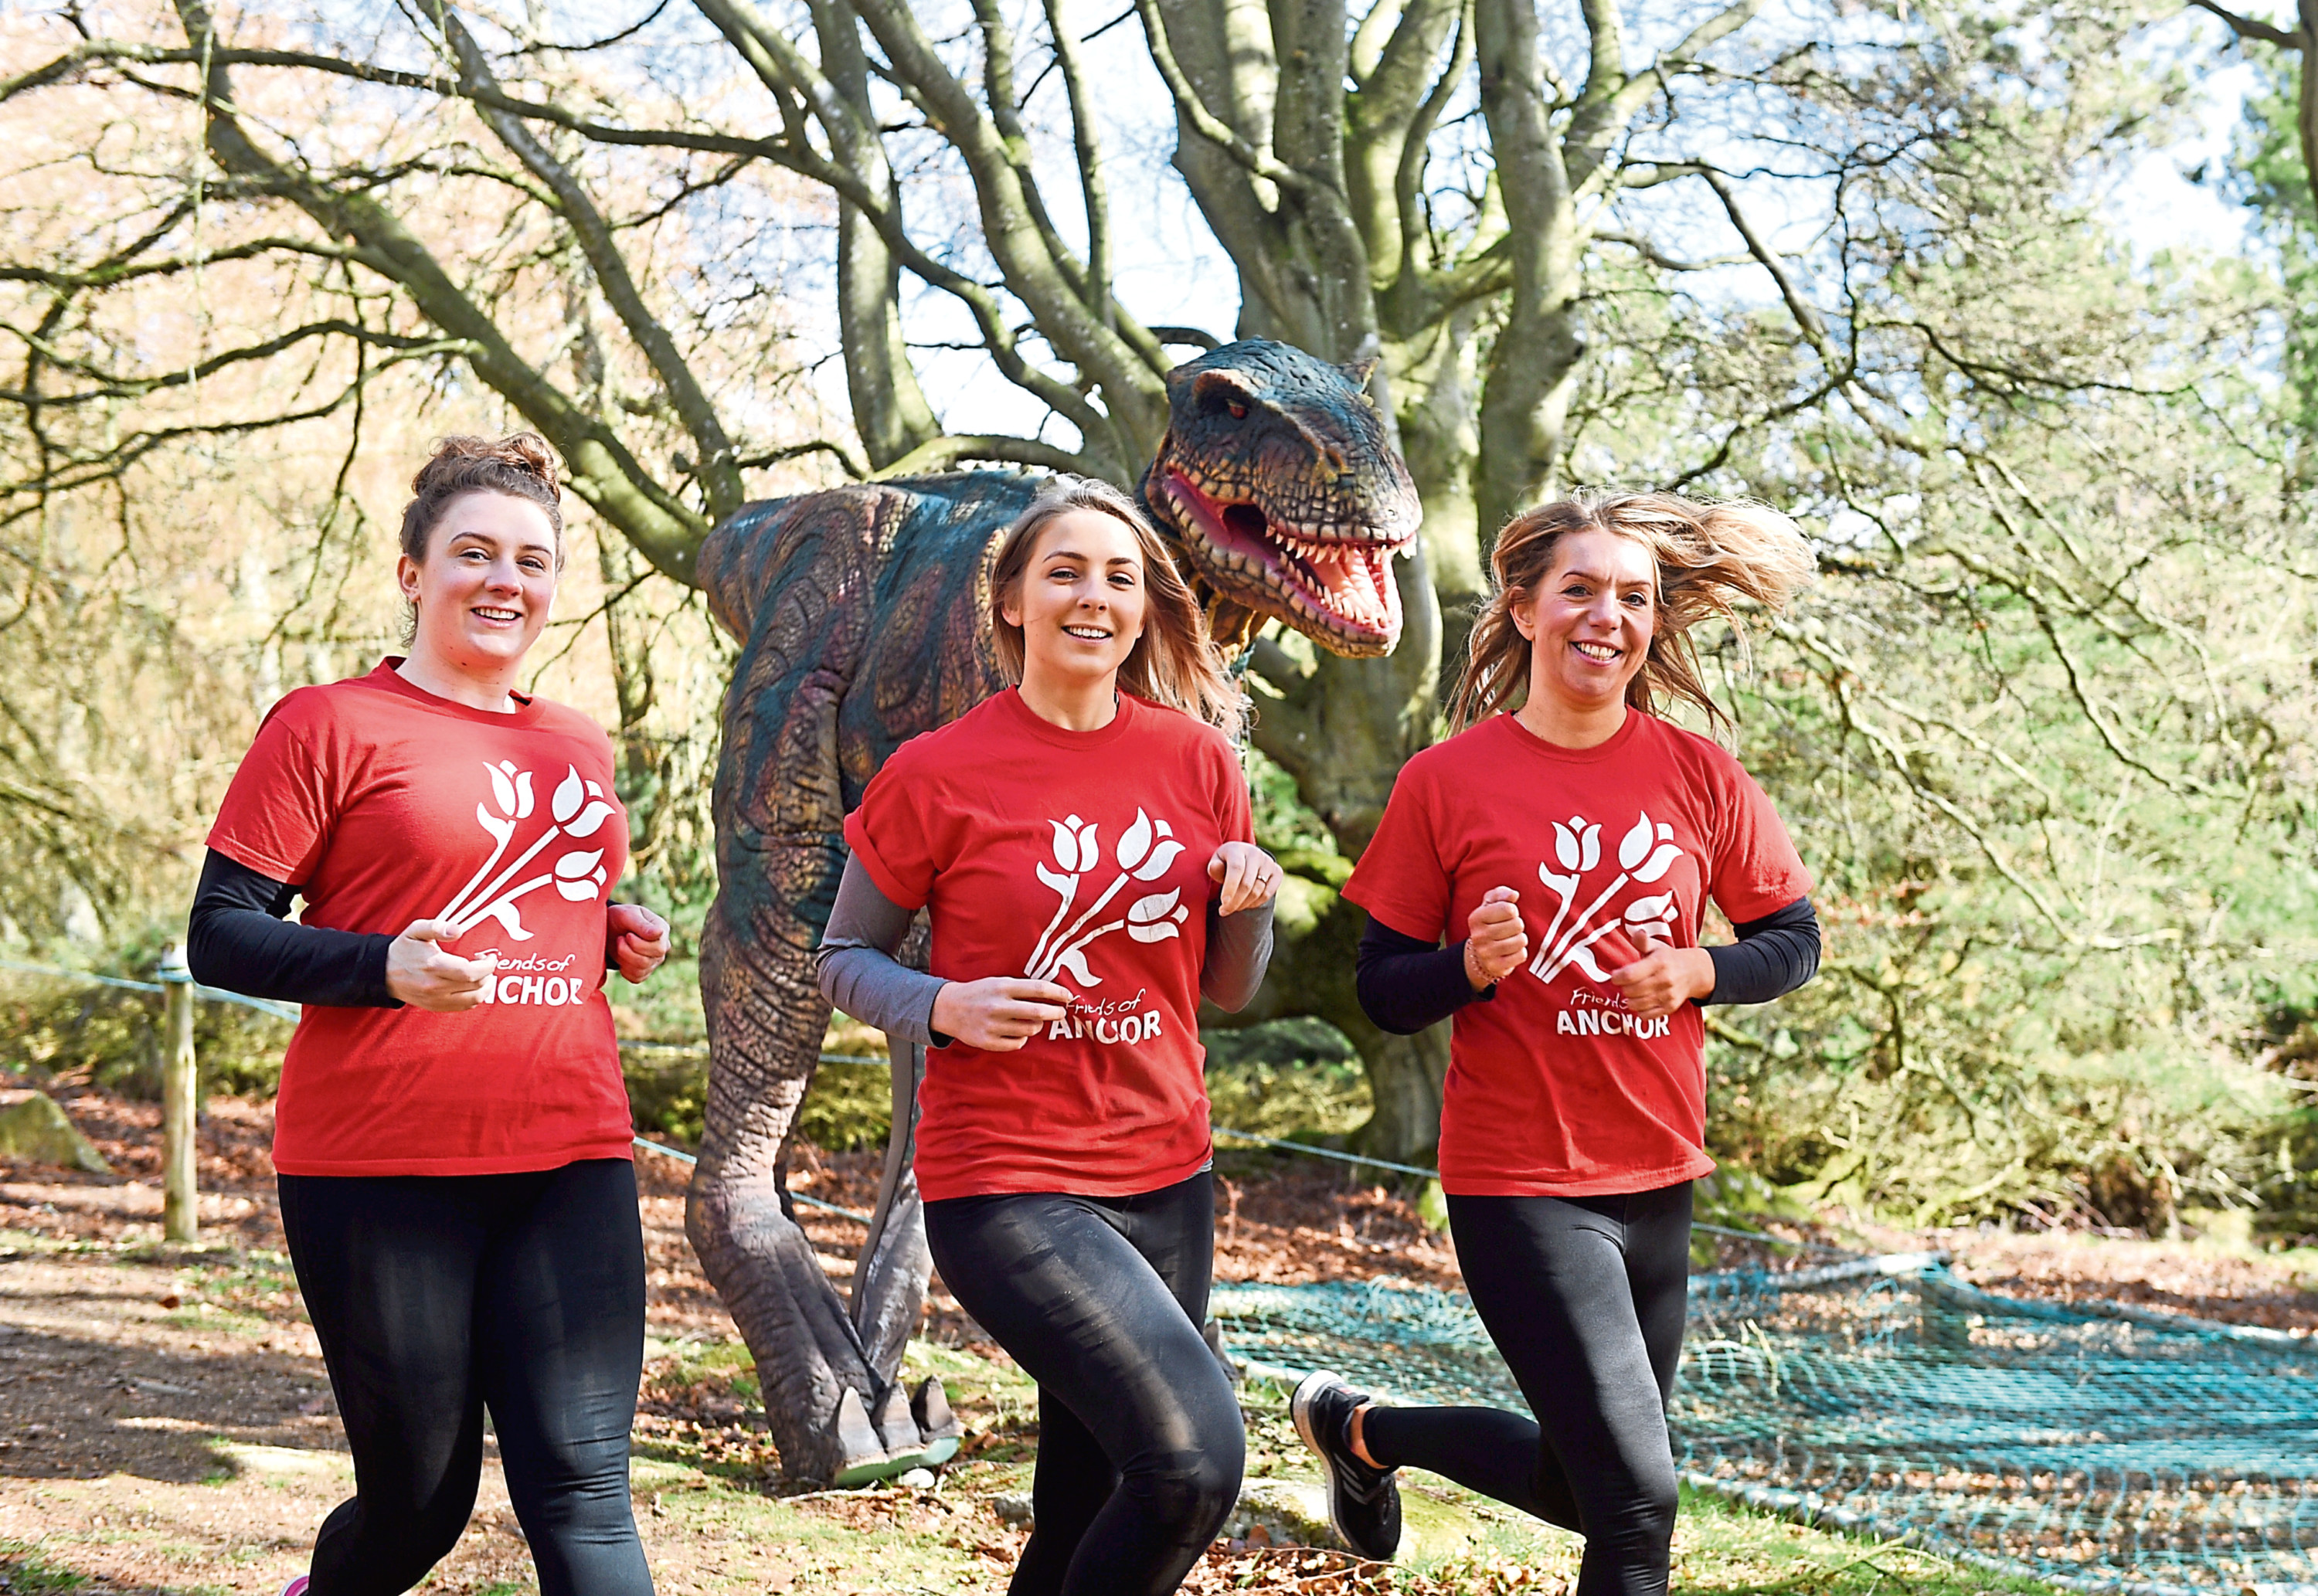 Participants will have to dodge a life-size T-rex as they navigate obstacles in Glack Attack